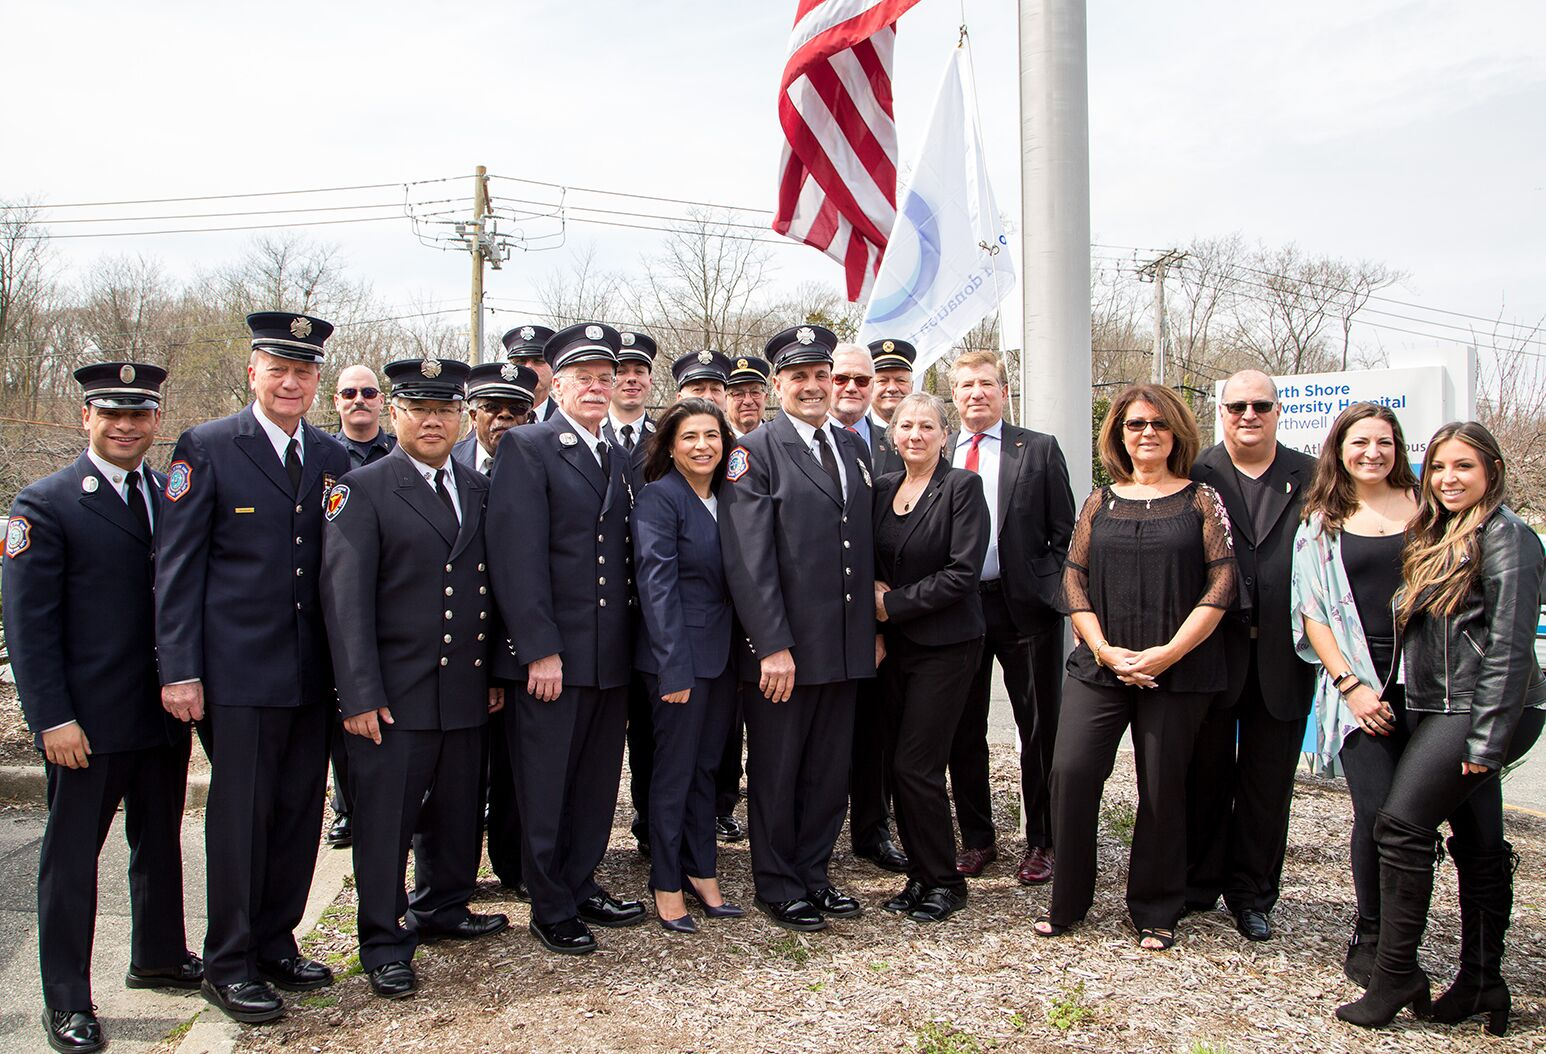 Northwell Health leadership, joined by State Senator Anna Kaplan (center) , donor families and volunteer firefighters gather for a flag-raising event at North Shore University Hospital to honor organ and tissue donors and their loved ones.